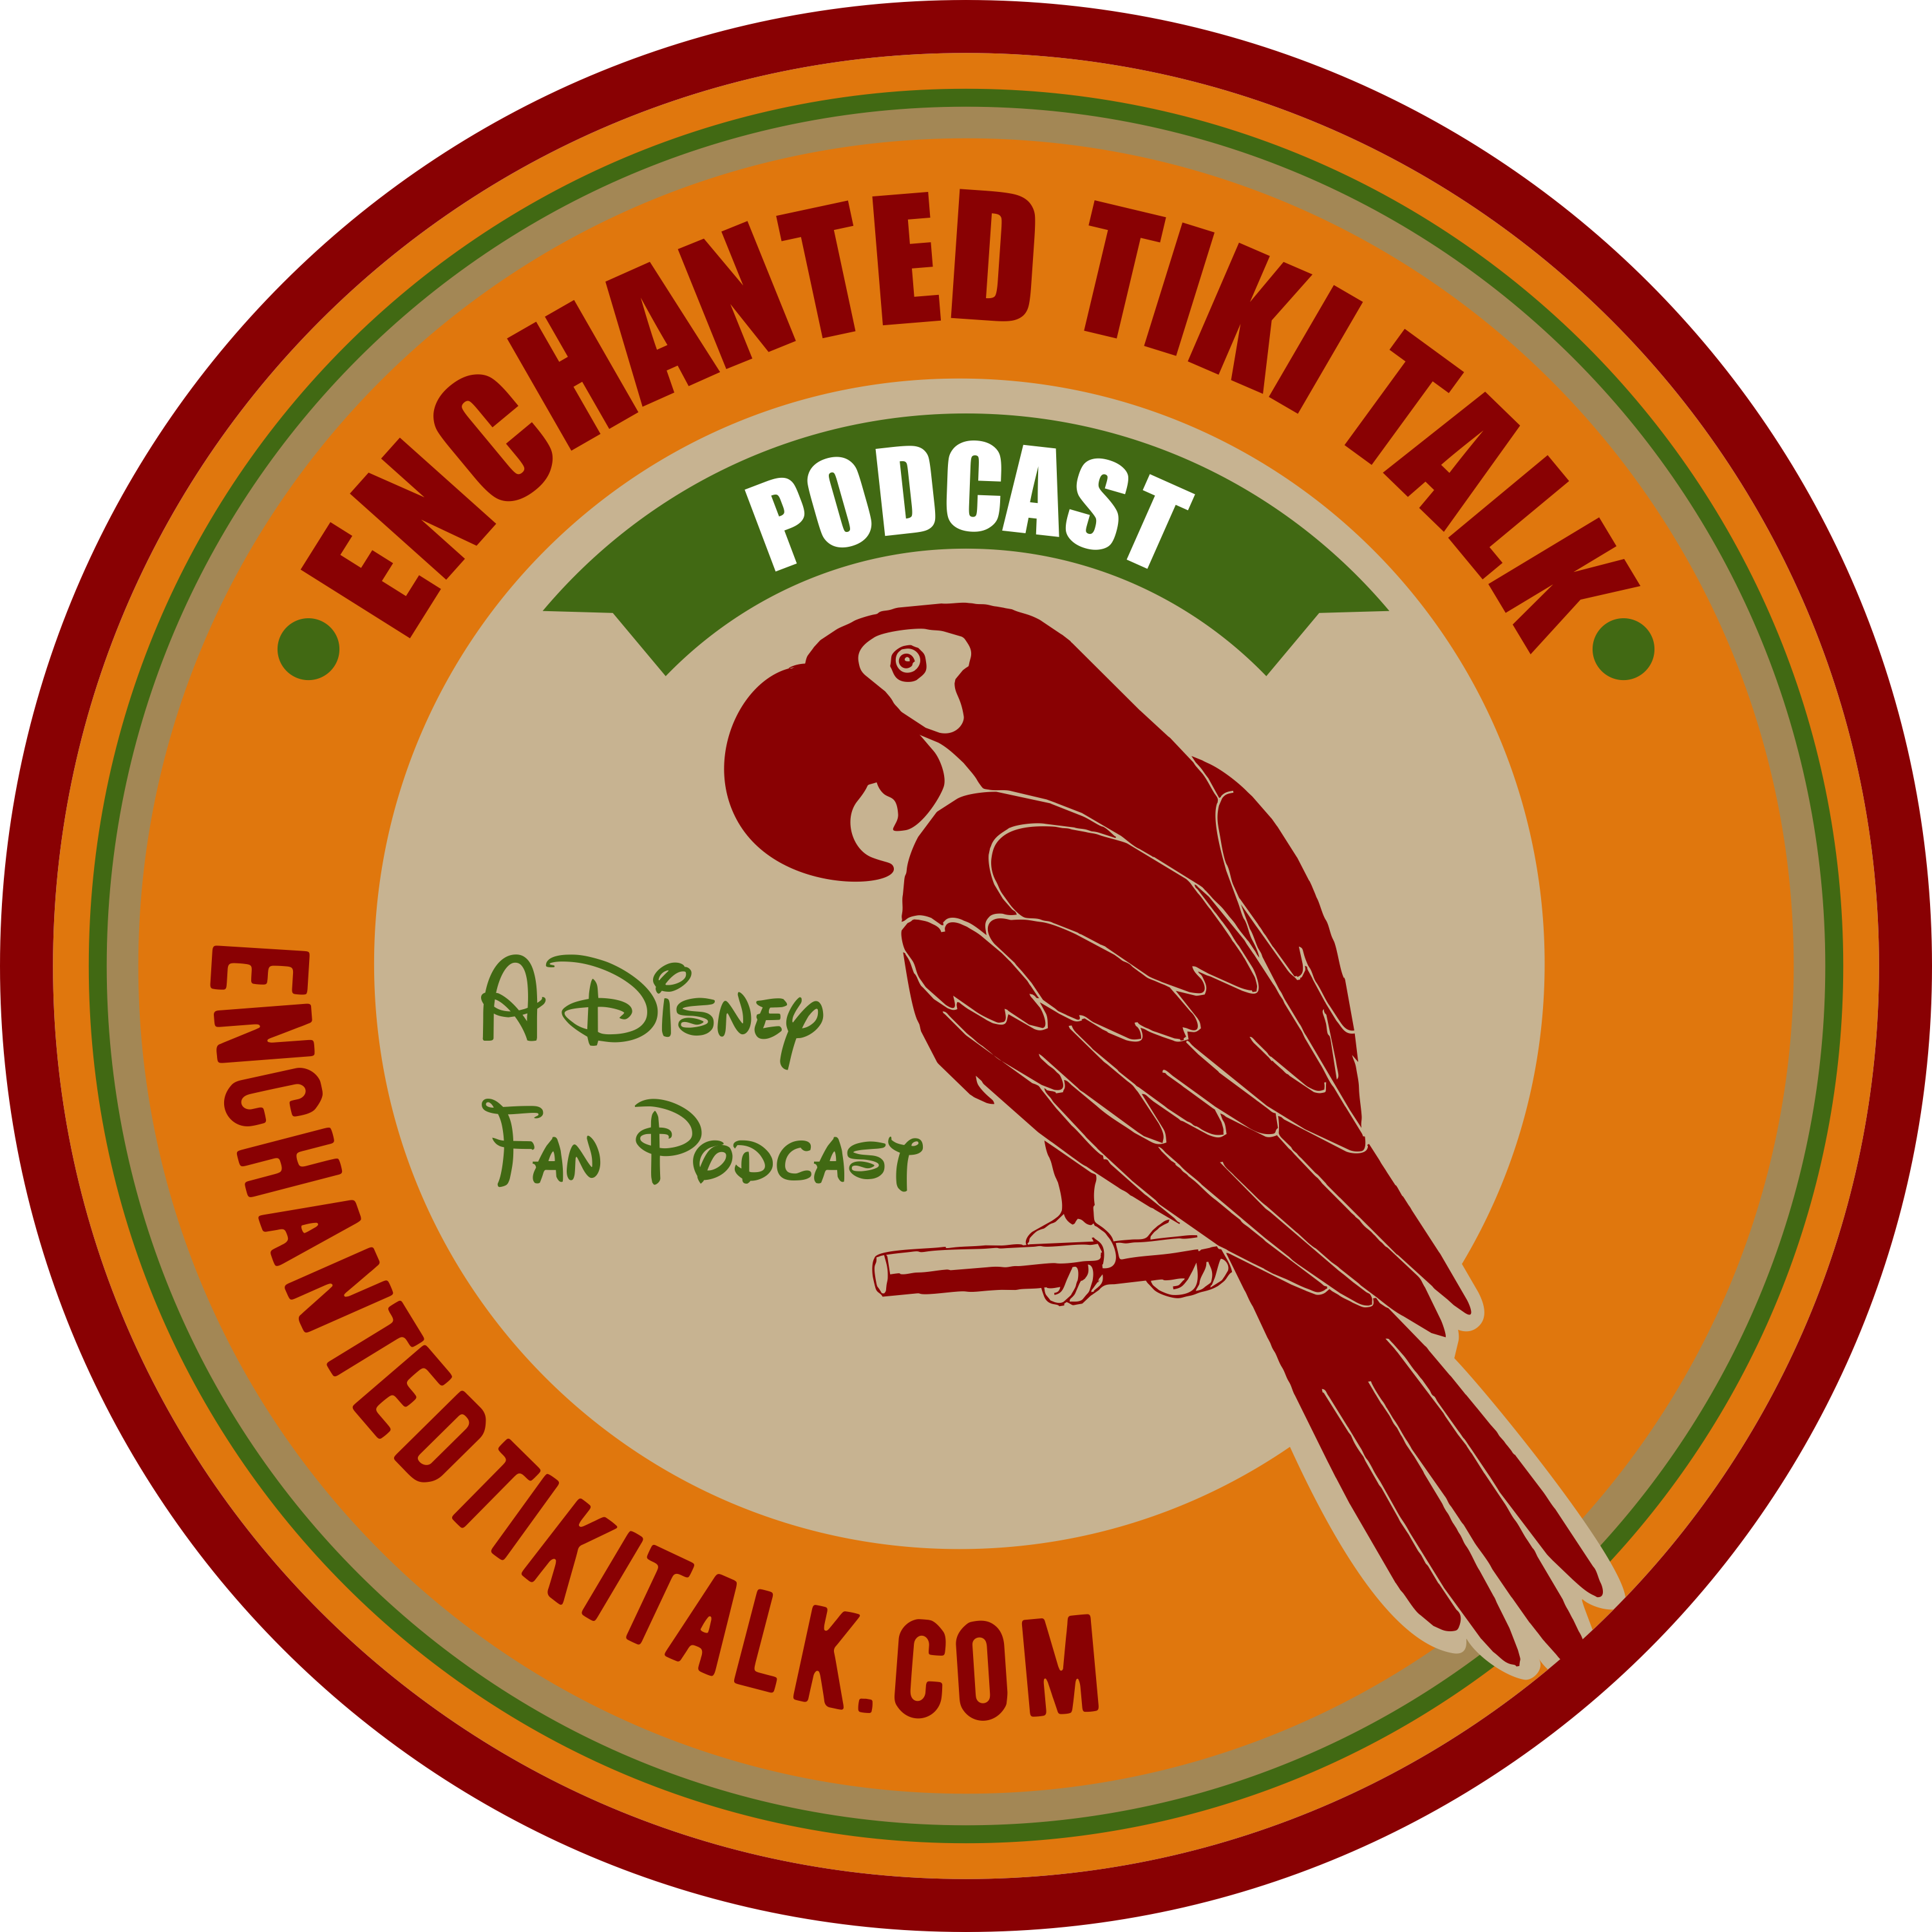 Enchanted Tiki Talk:  A Disney Fan Podcast